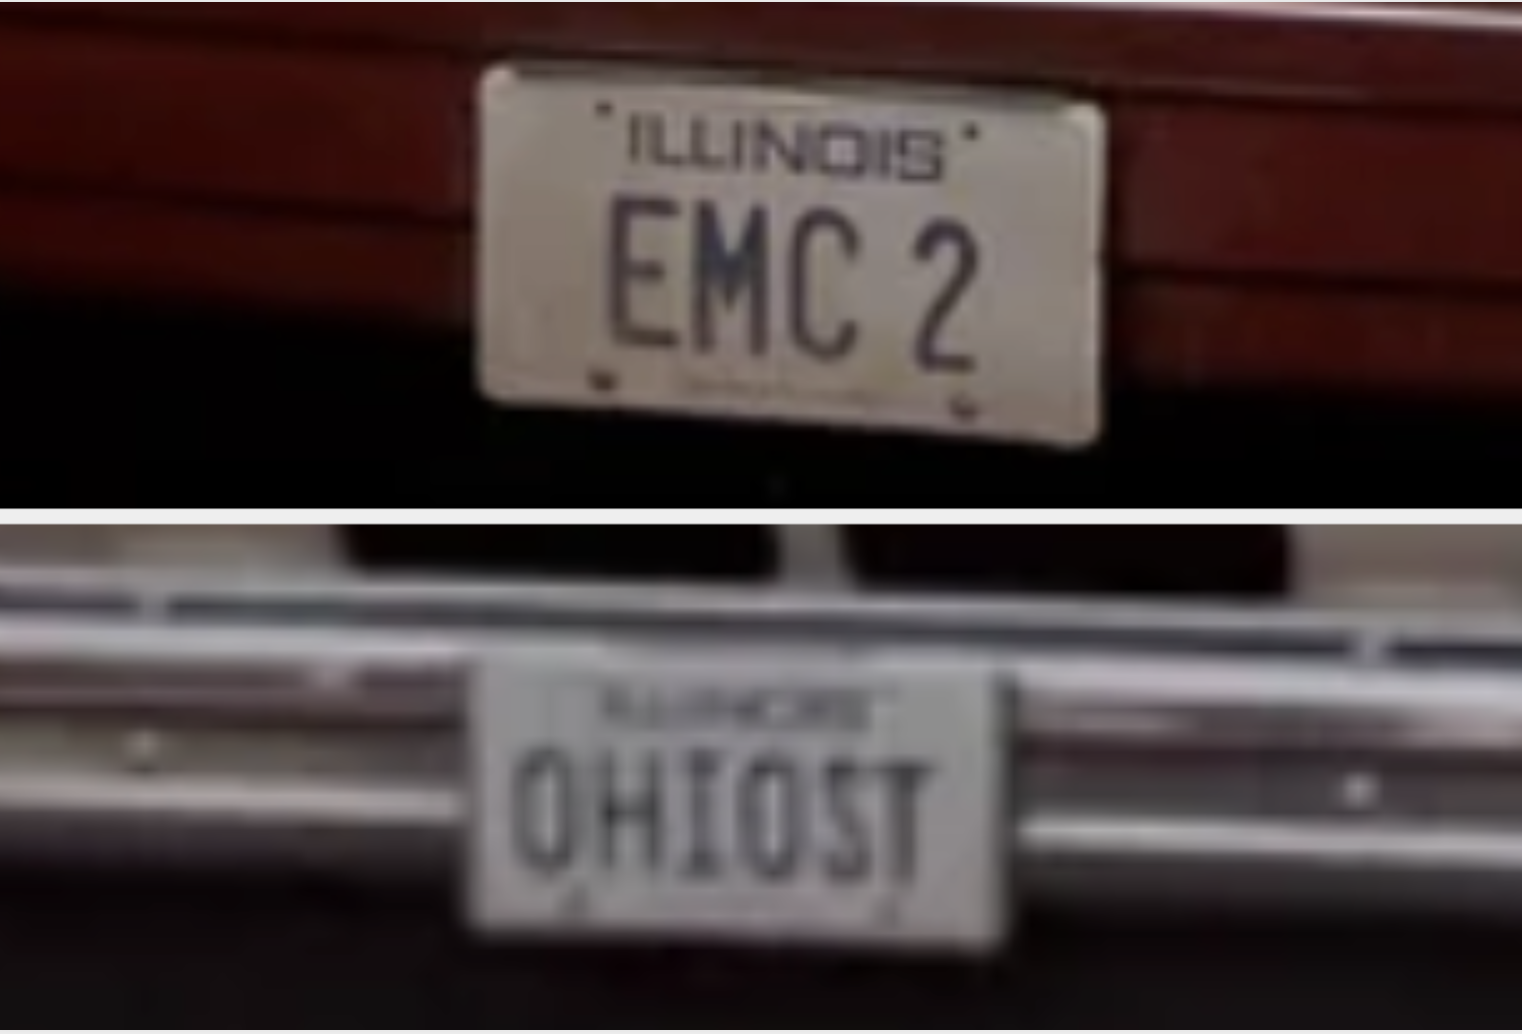 A close-up of the license plates